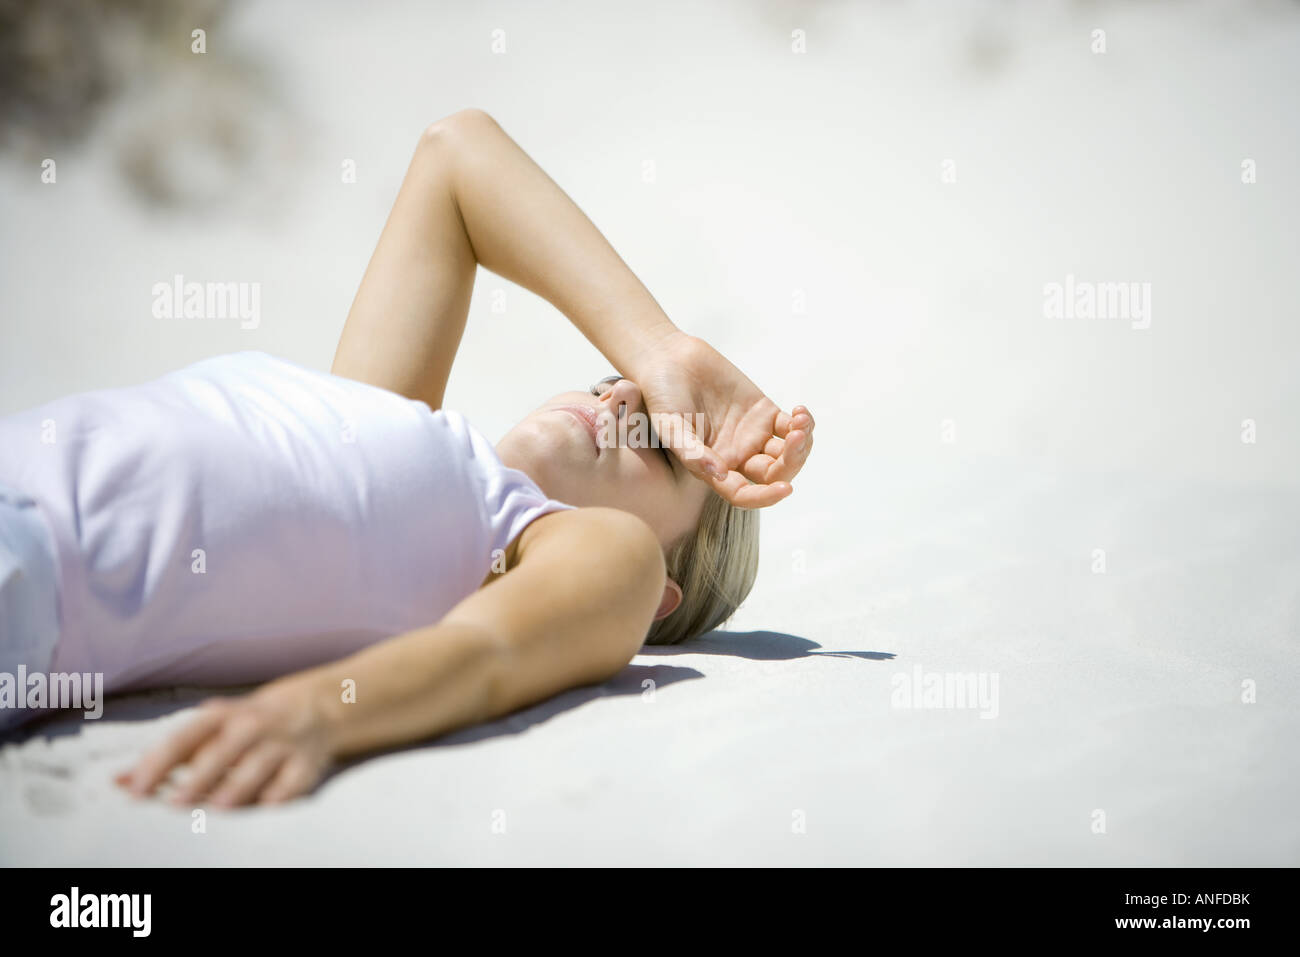 Young woman lying on beach, covering eyes with hand - Stock Image